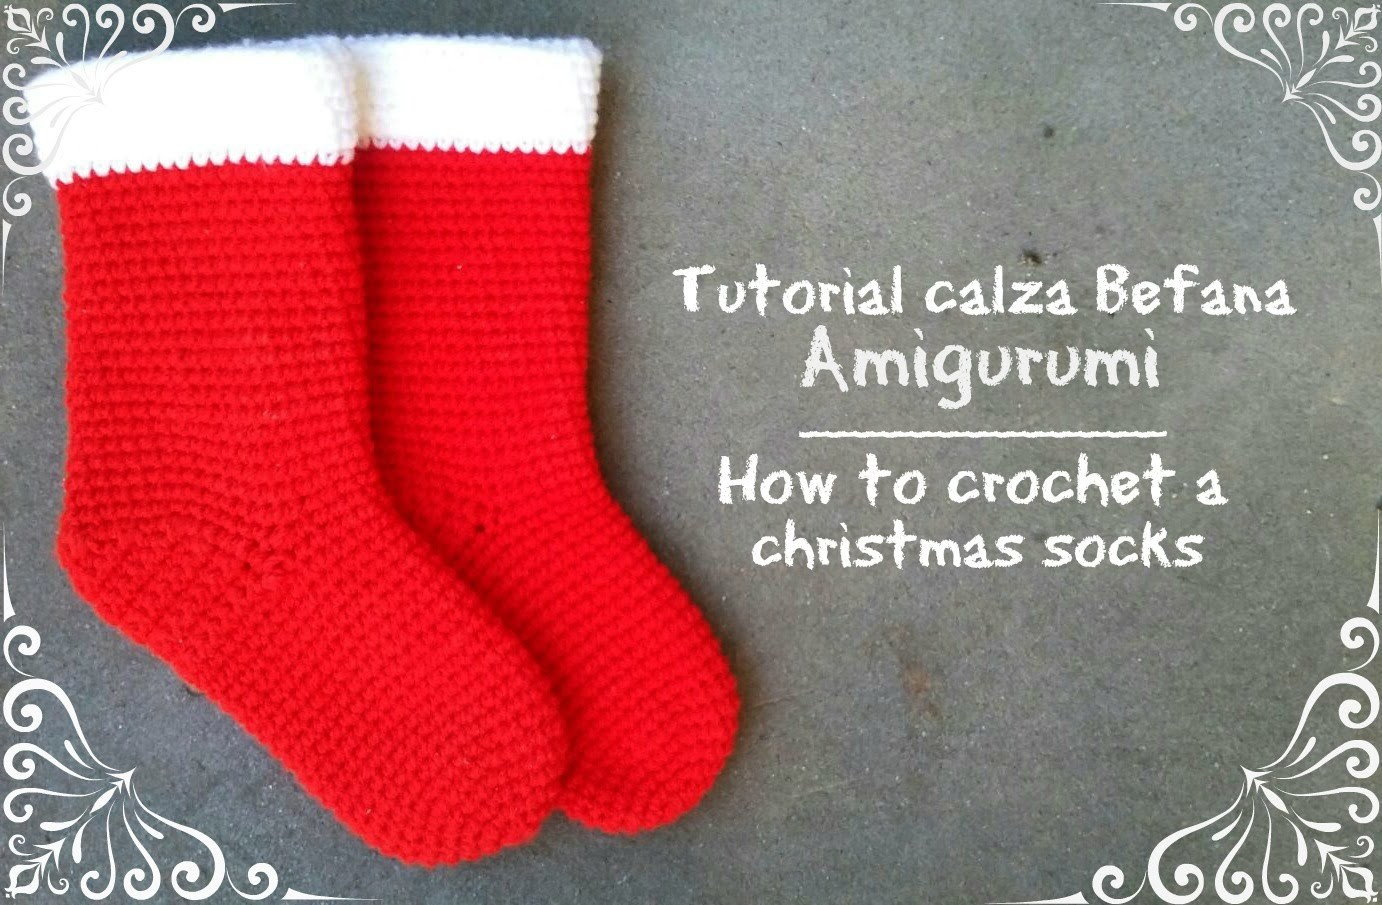 Calza Befana piccola amigurumi | How to crochet a christmas socks